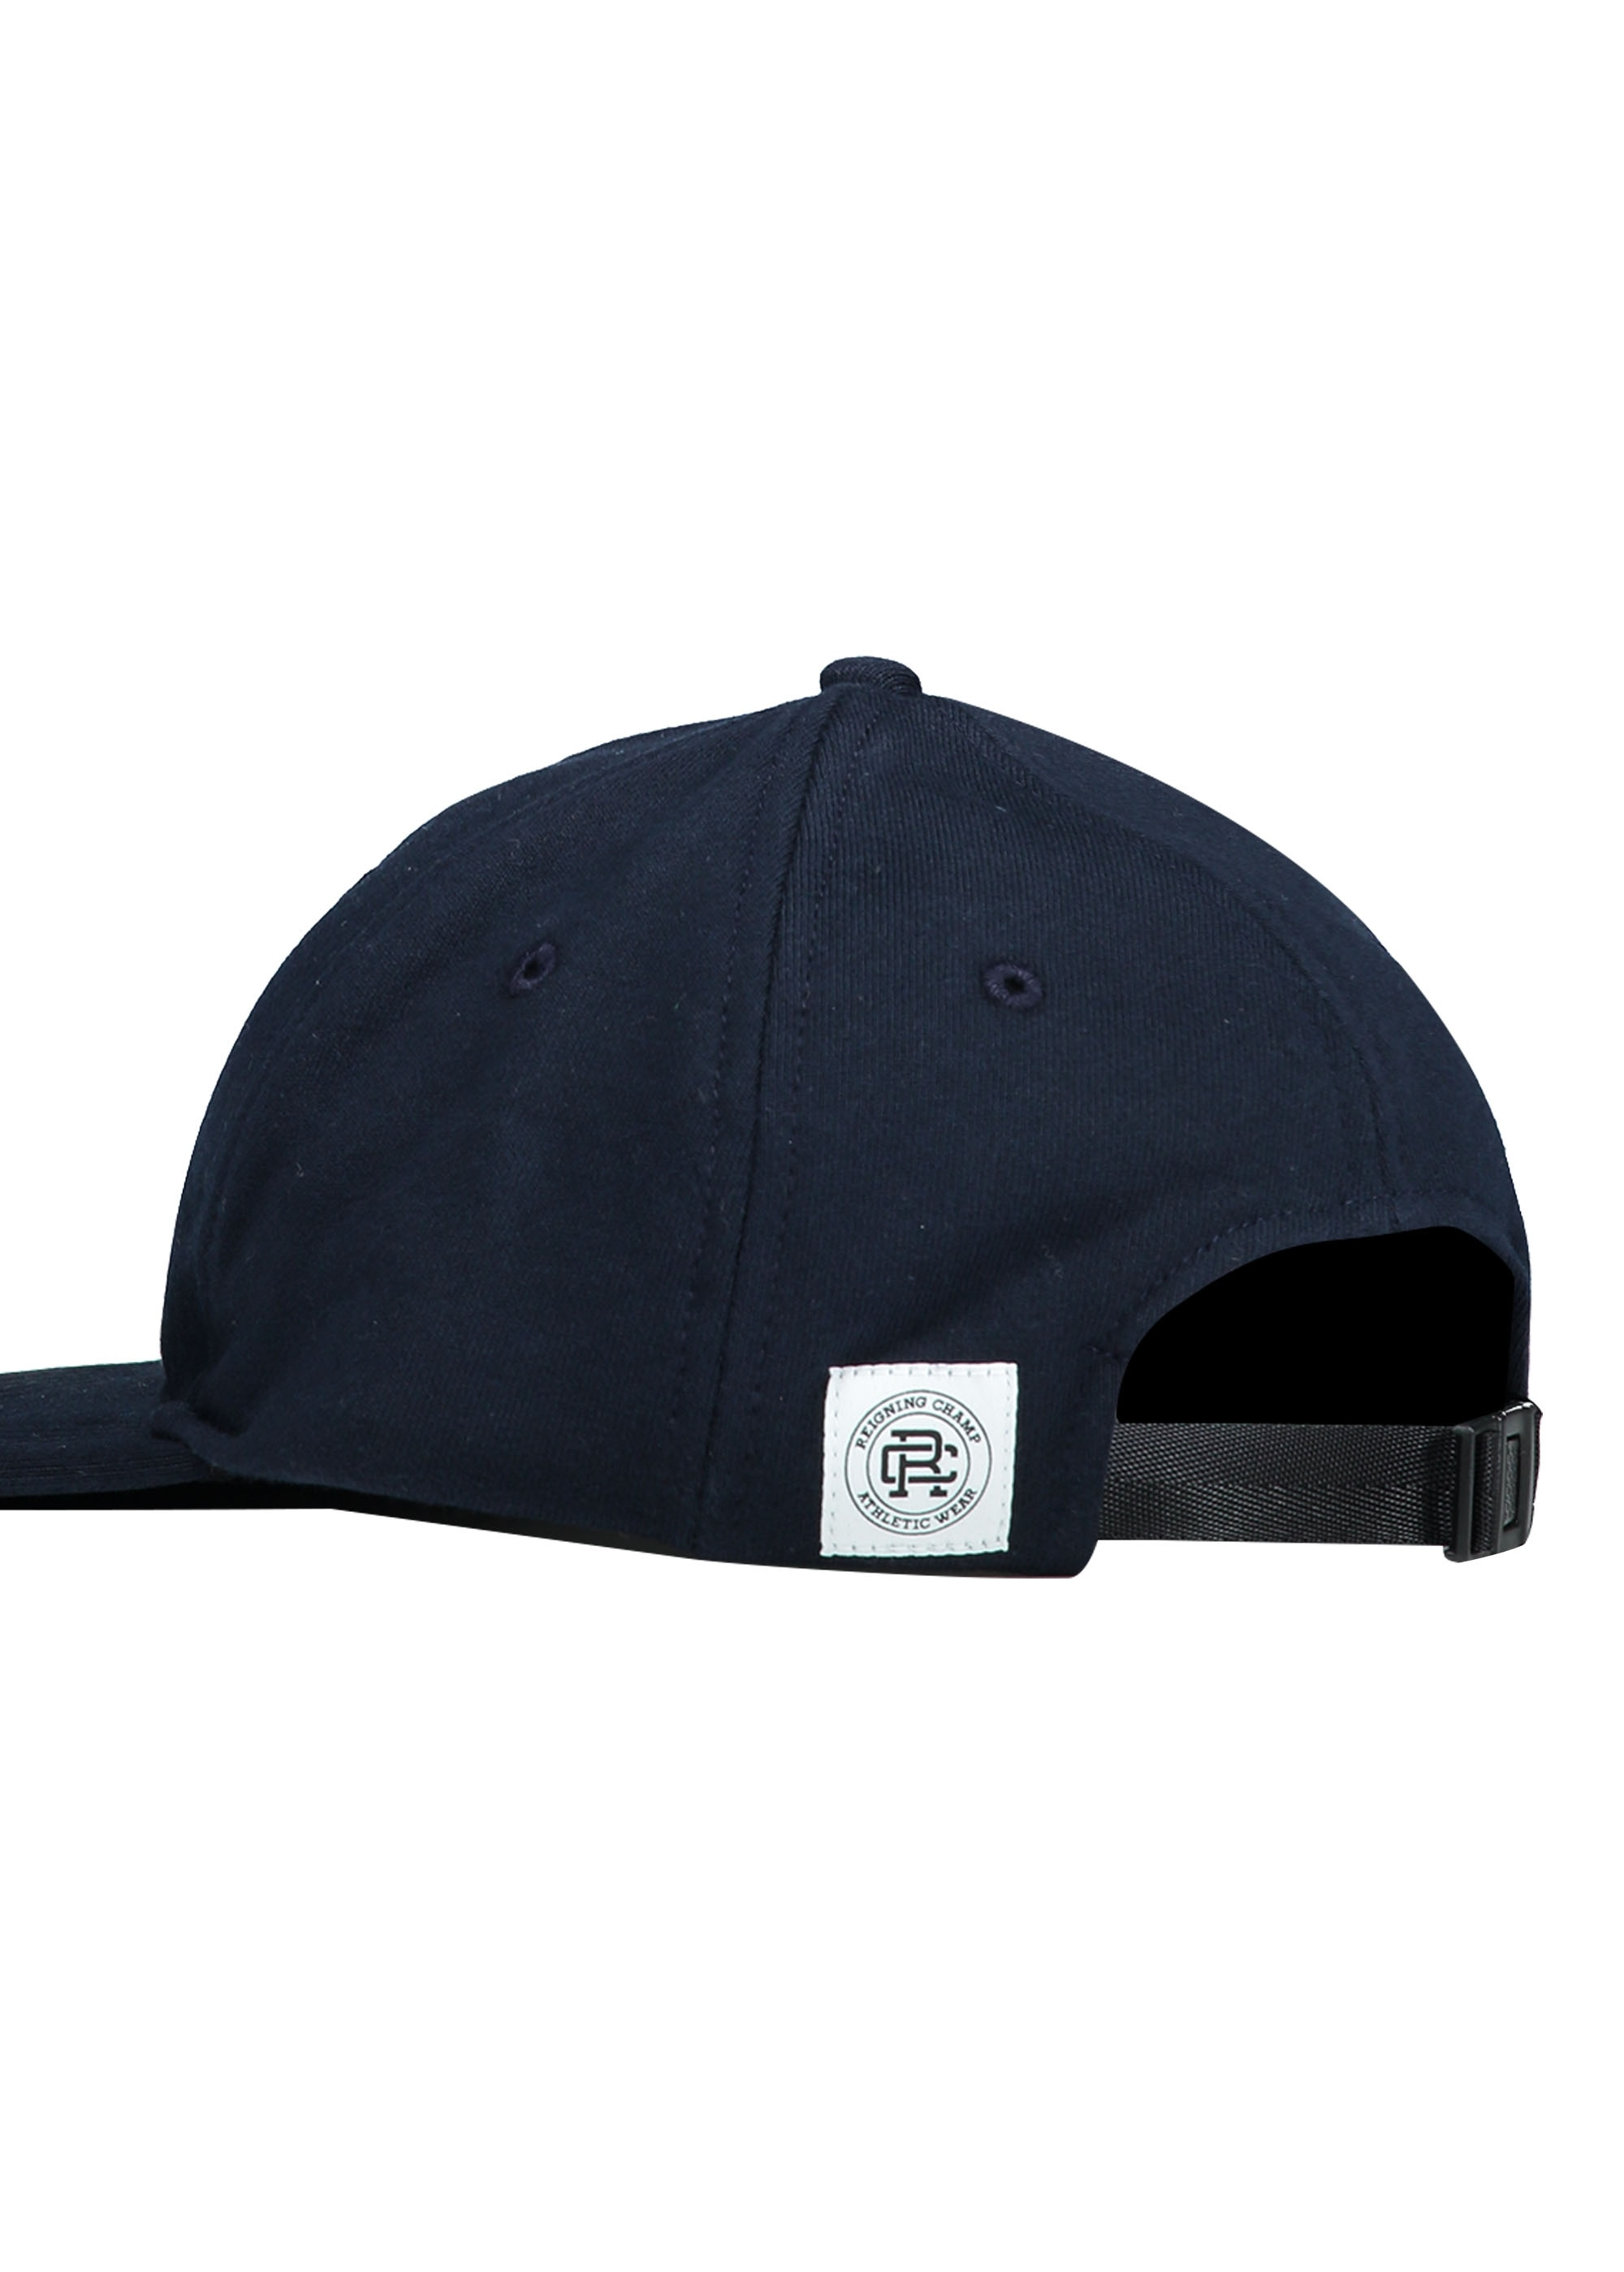 90ba31b280 Reigning Champ Terry 6 Panel Hat - Navy - Headwear from Triads UK